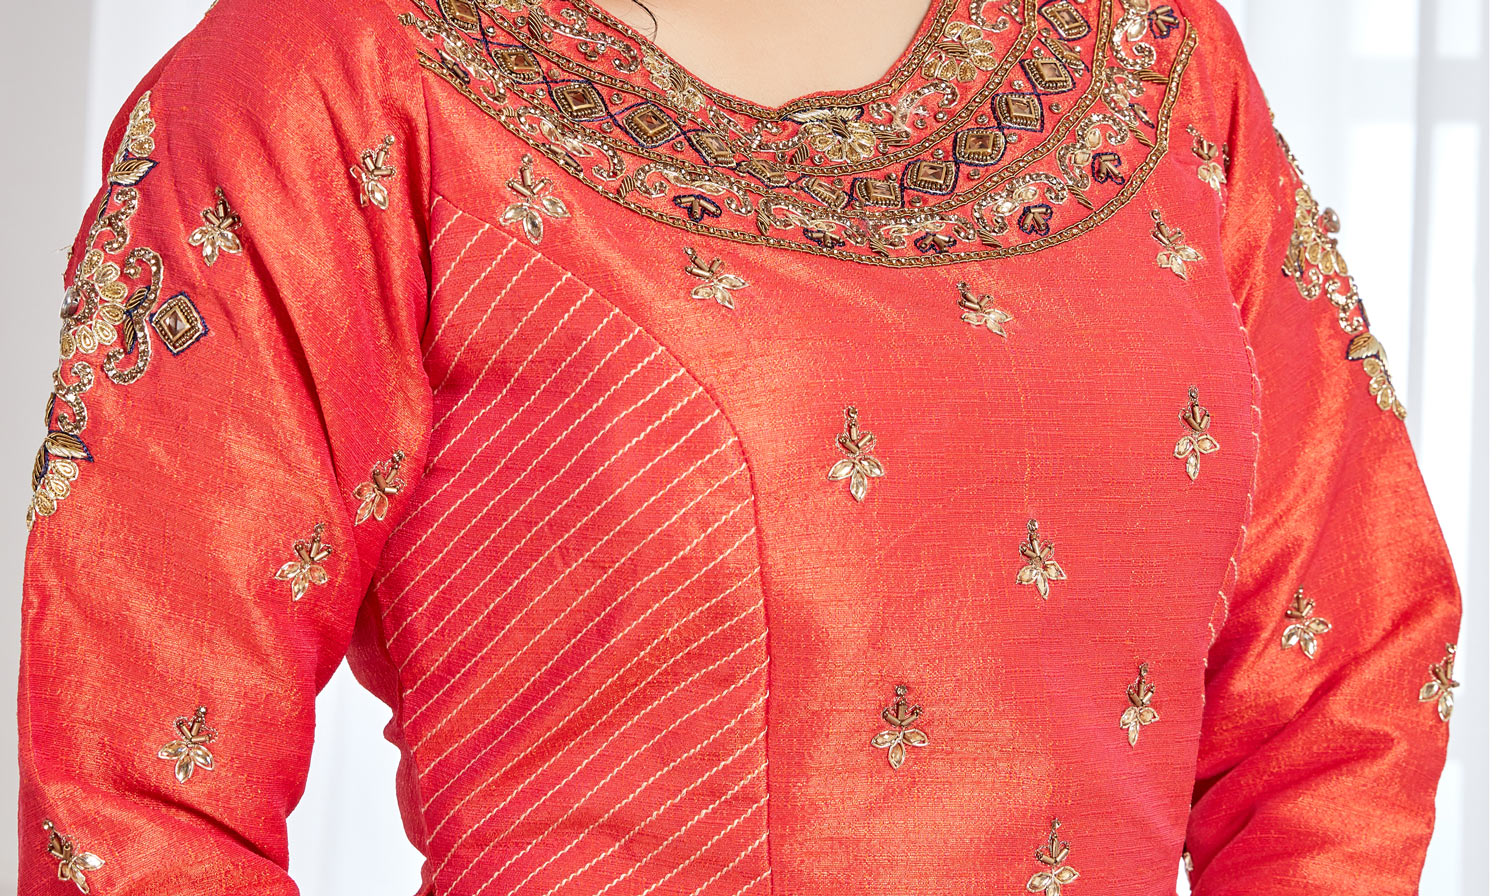 Embellished Orange Colored Lehenga Choli